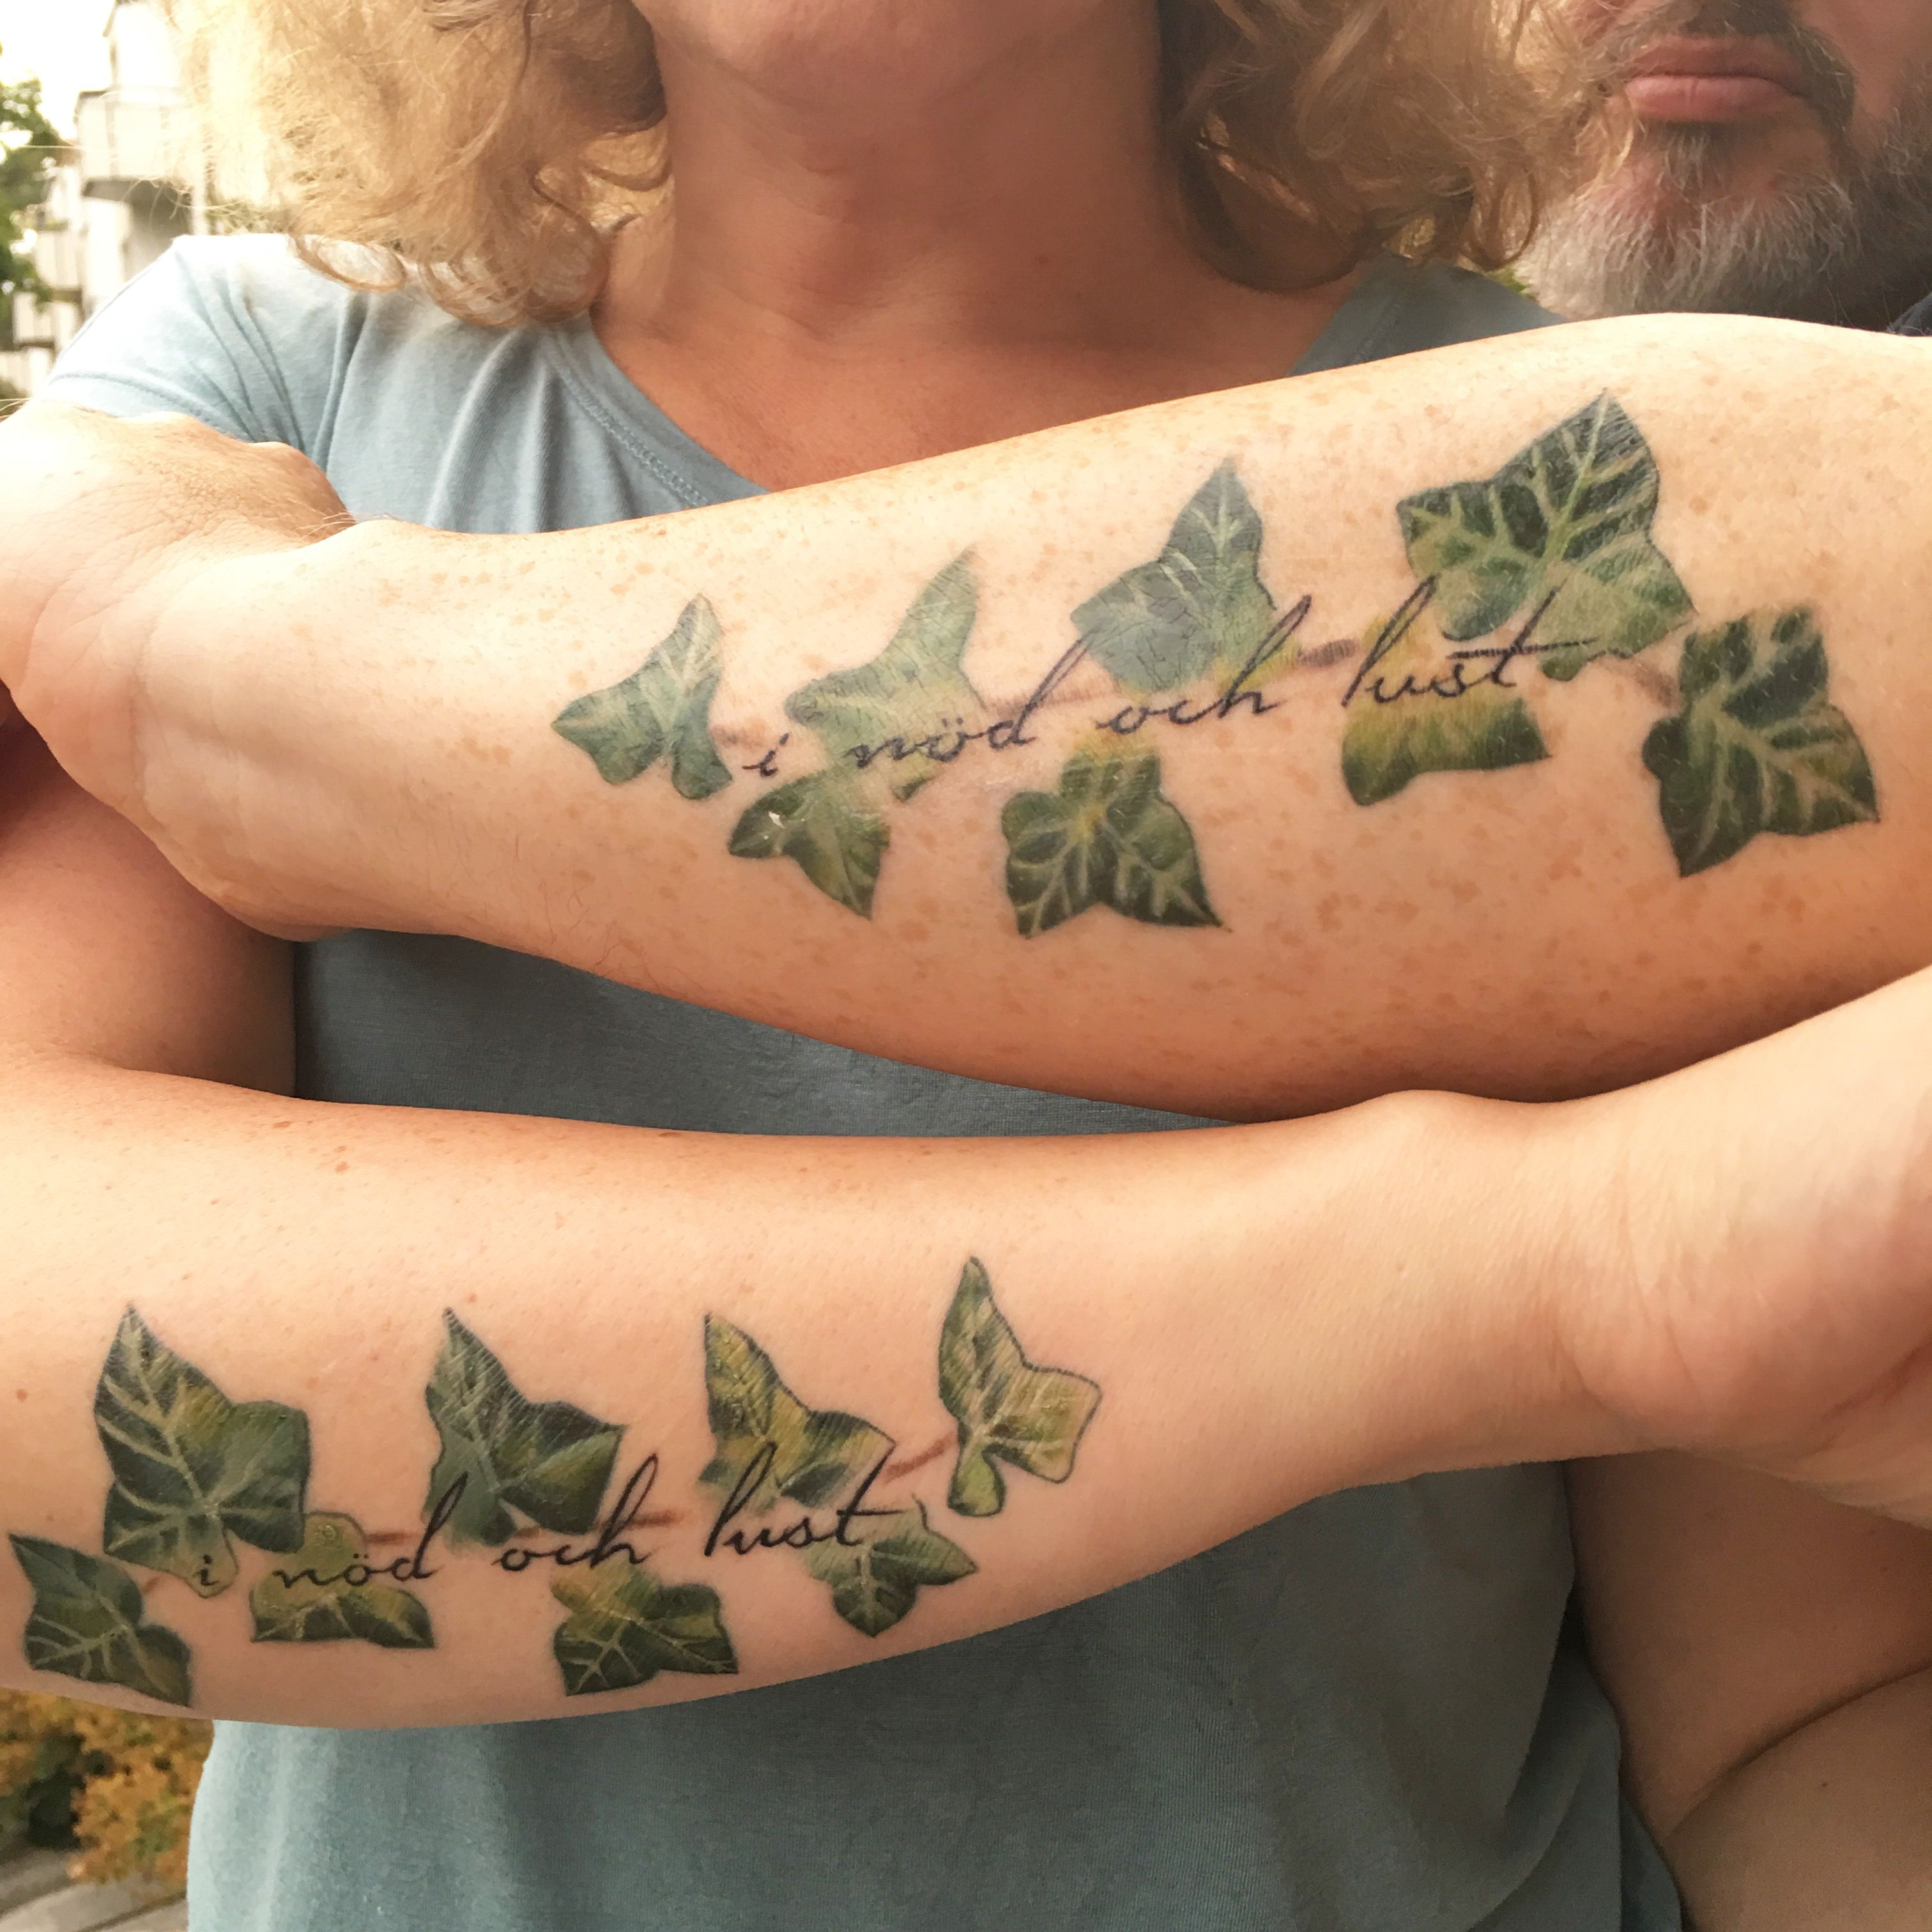 15th wedding anniversary tattoos ivy in sickness and in health tattoo buycottarizona Choice Image